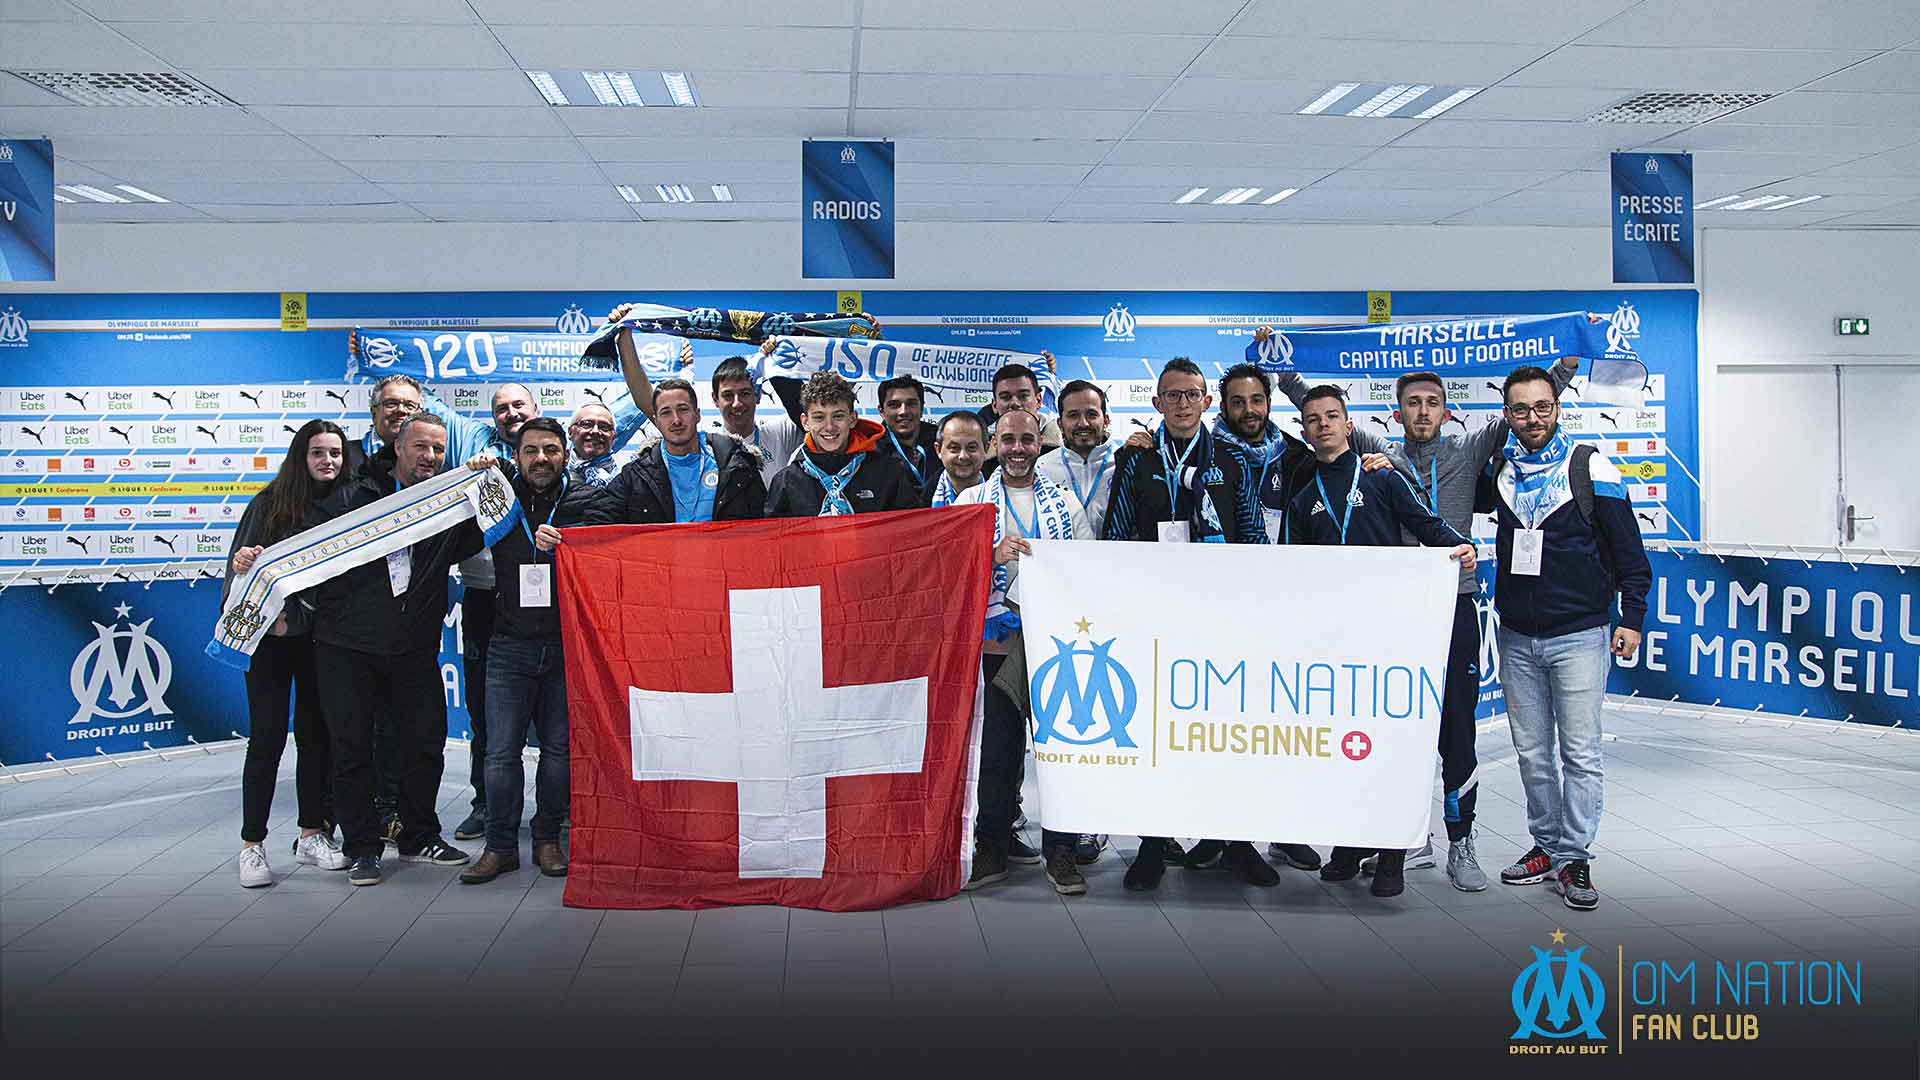 OM Nation Lausanne